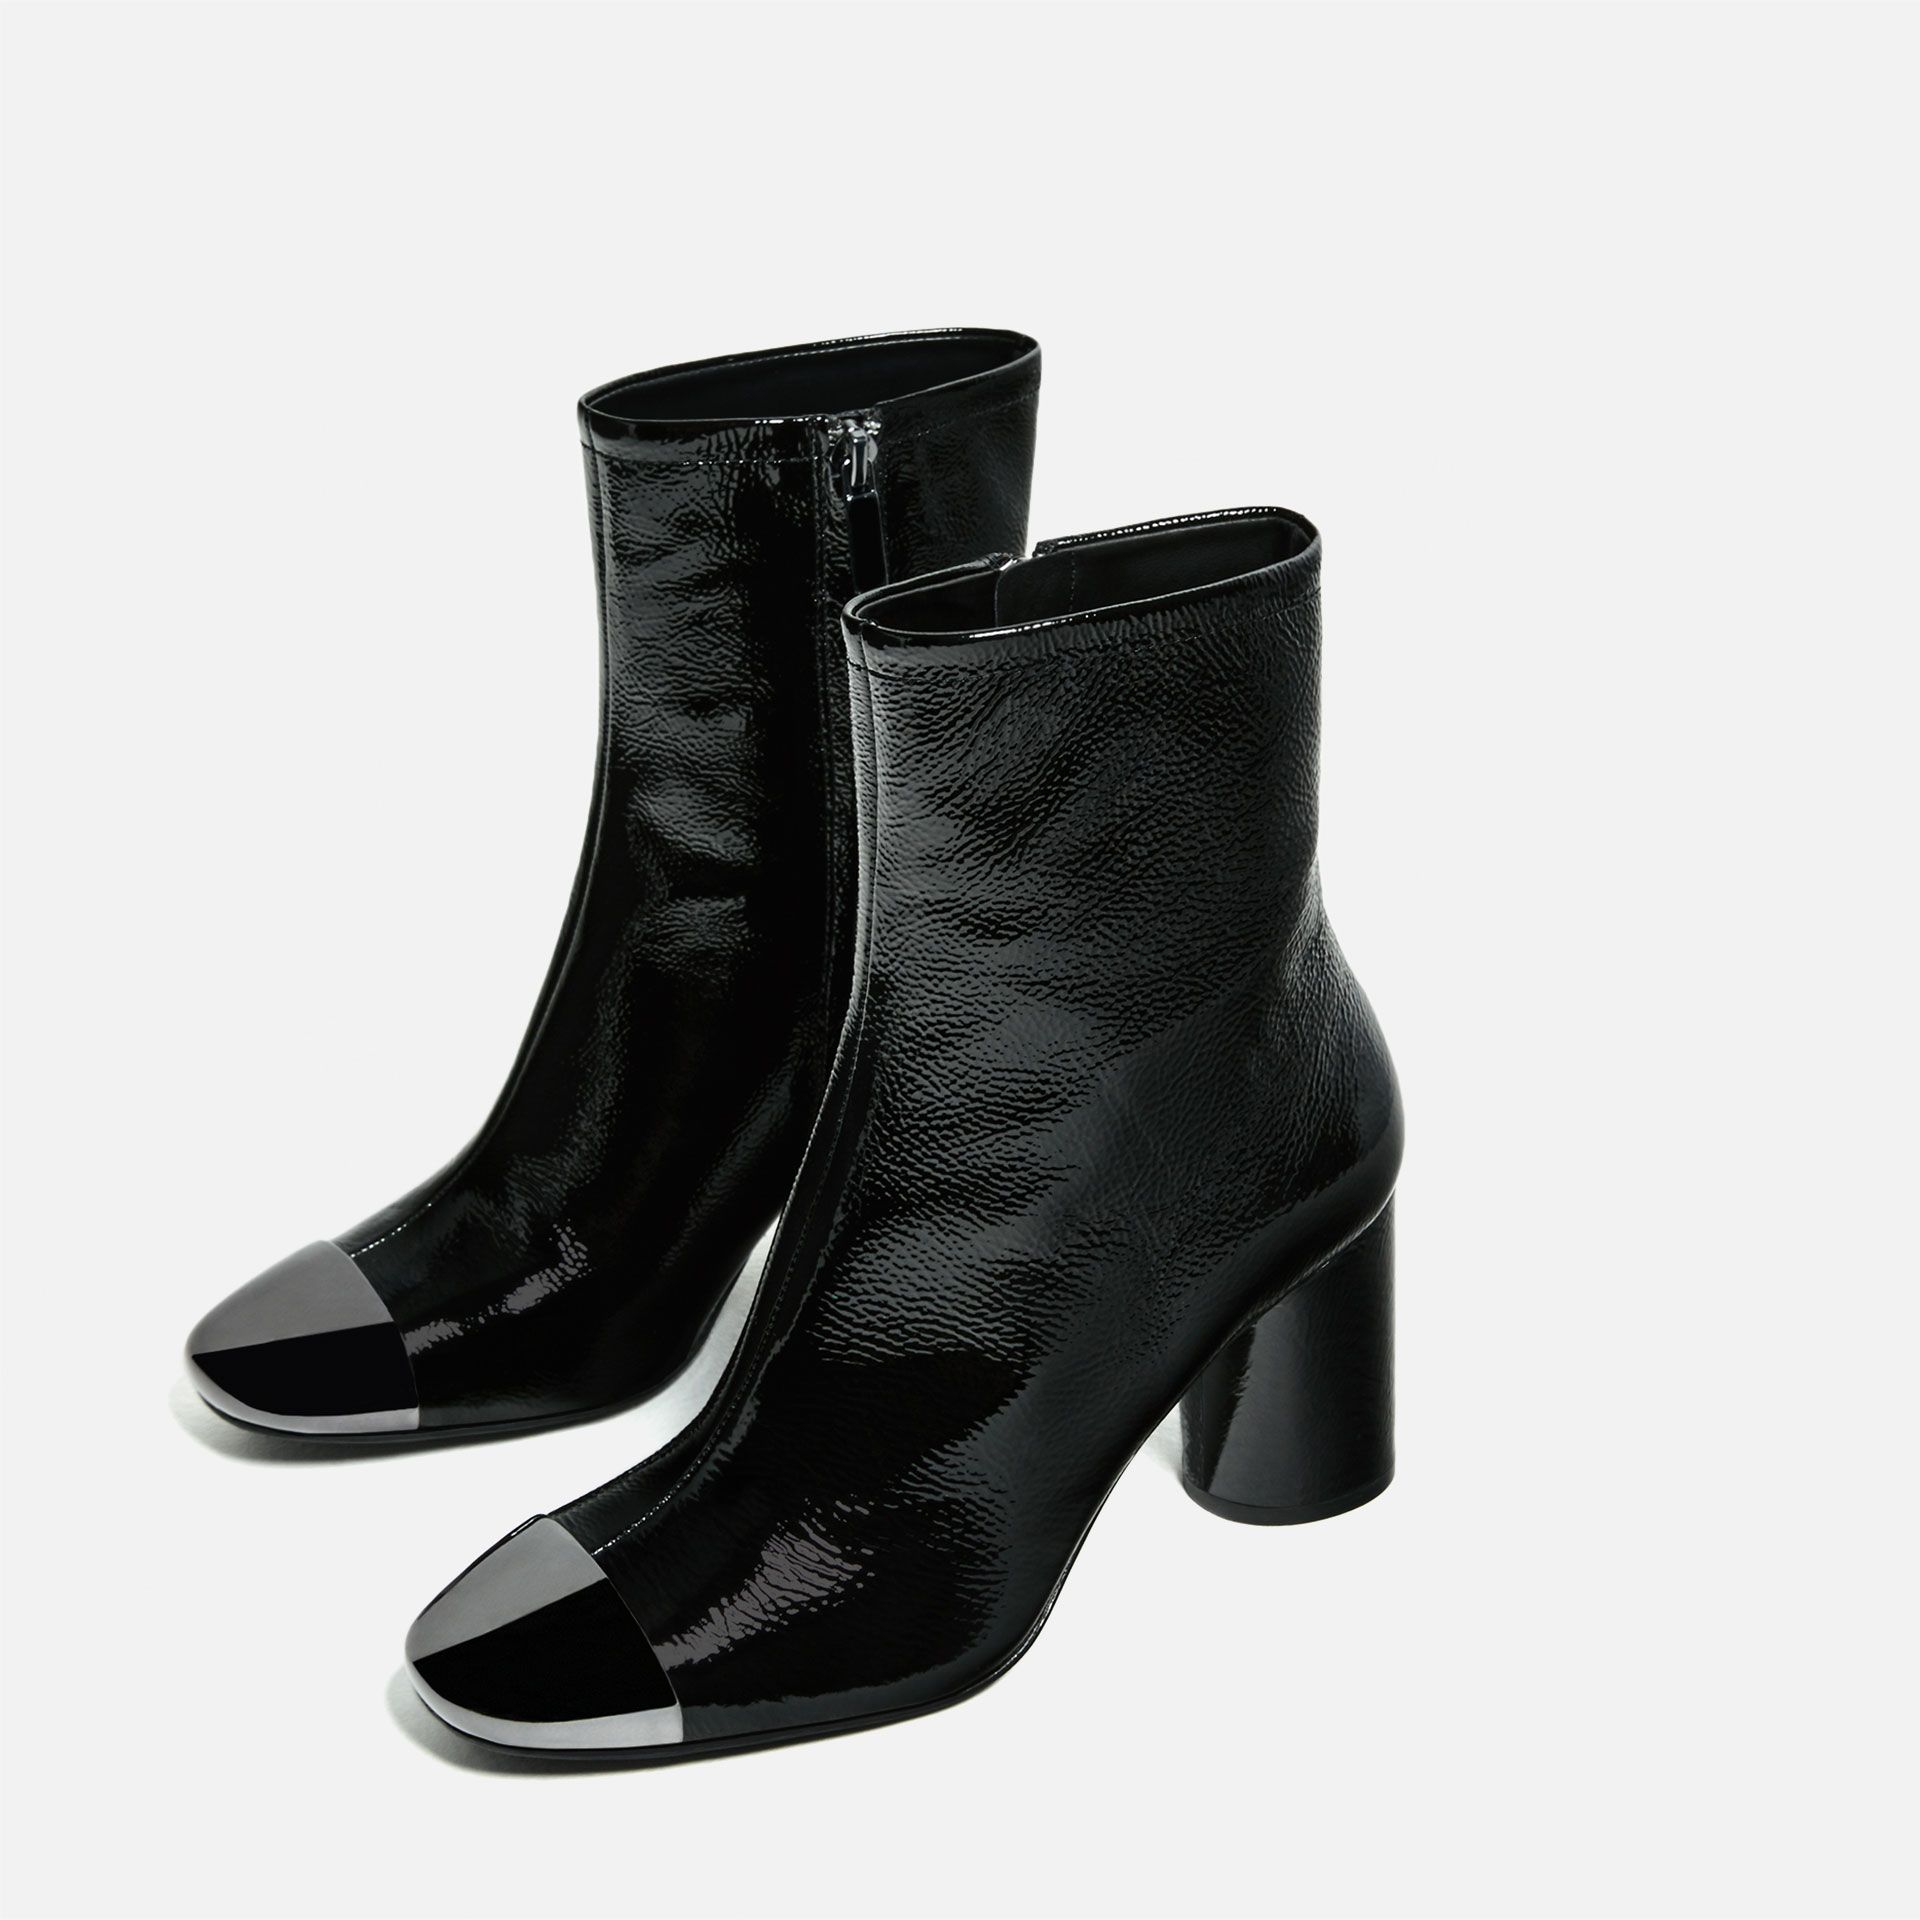 HIGH WITH HEEL LEATHER ANKLE botas WITH HIGH METALLIC TOE ZAPATOS 0962ae